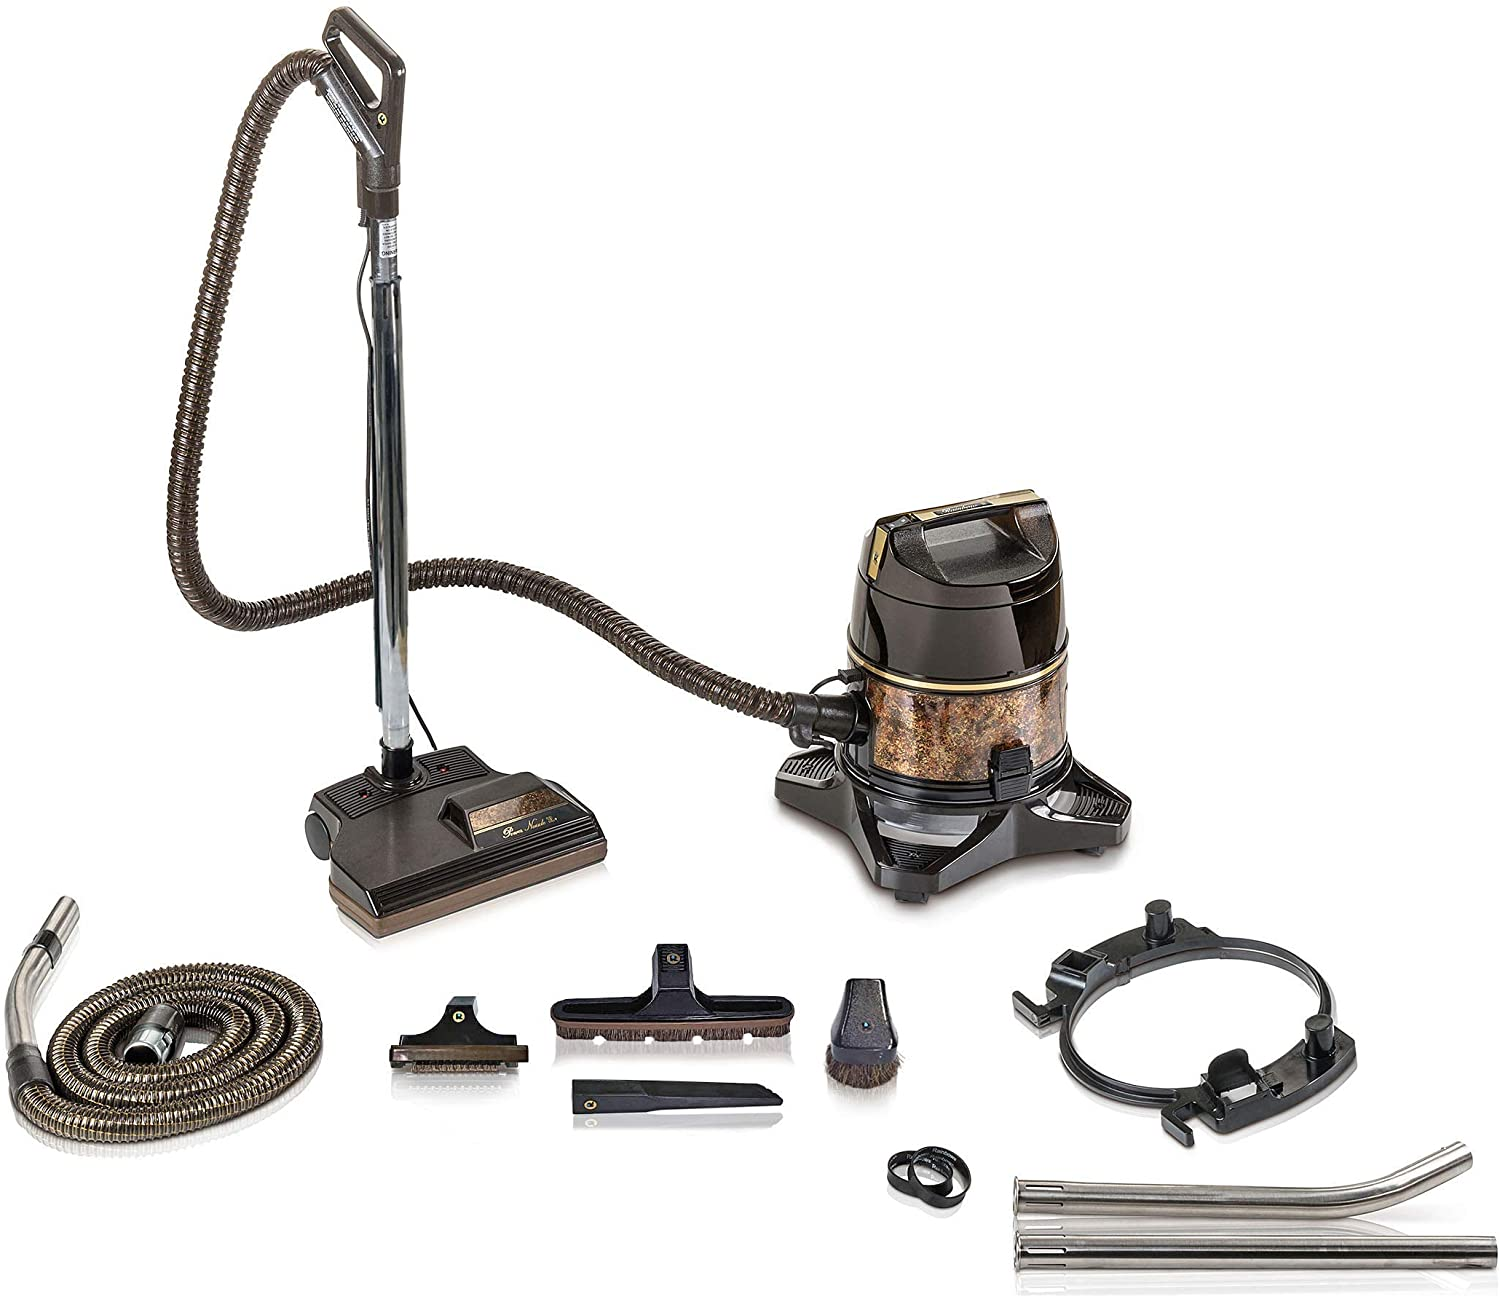 Genuine Rainbow SE PN2 Vacuum Cleaner with 5YR Warranty (Certified Reconditioned)